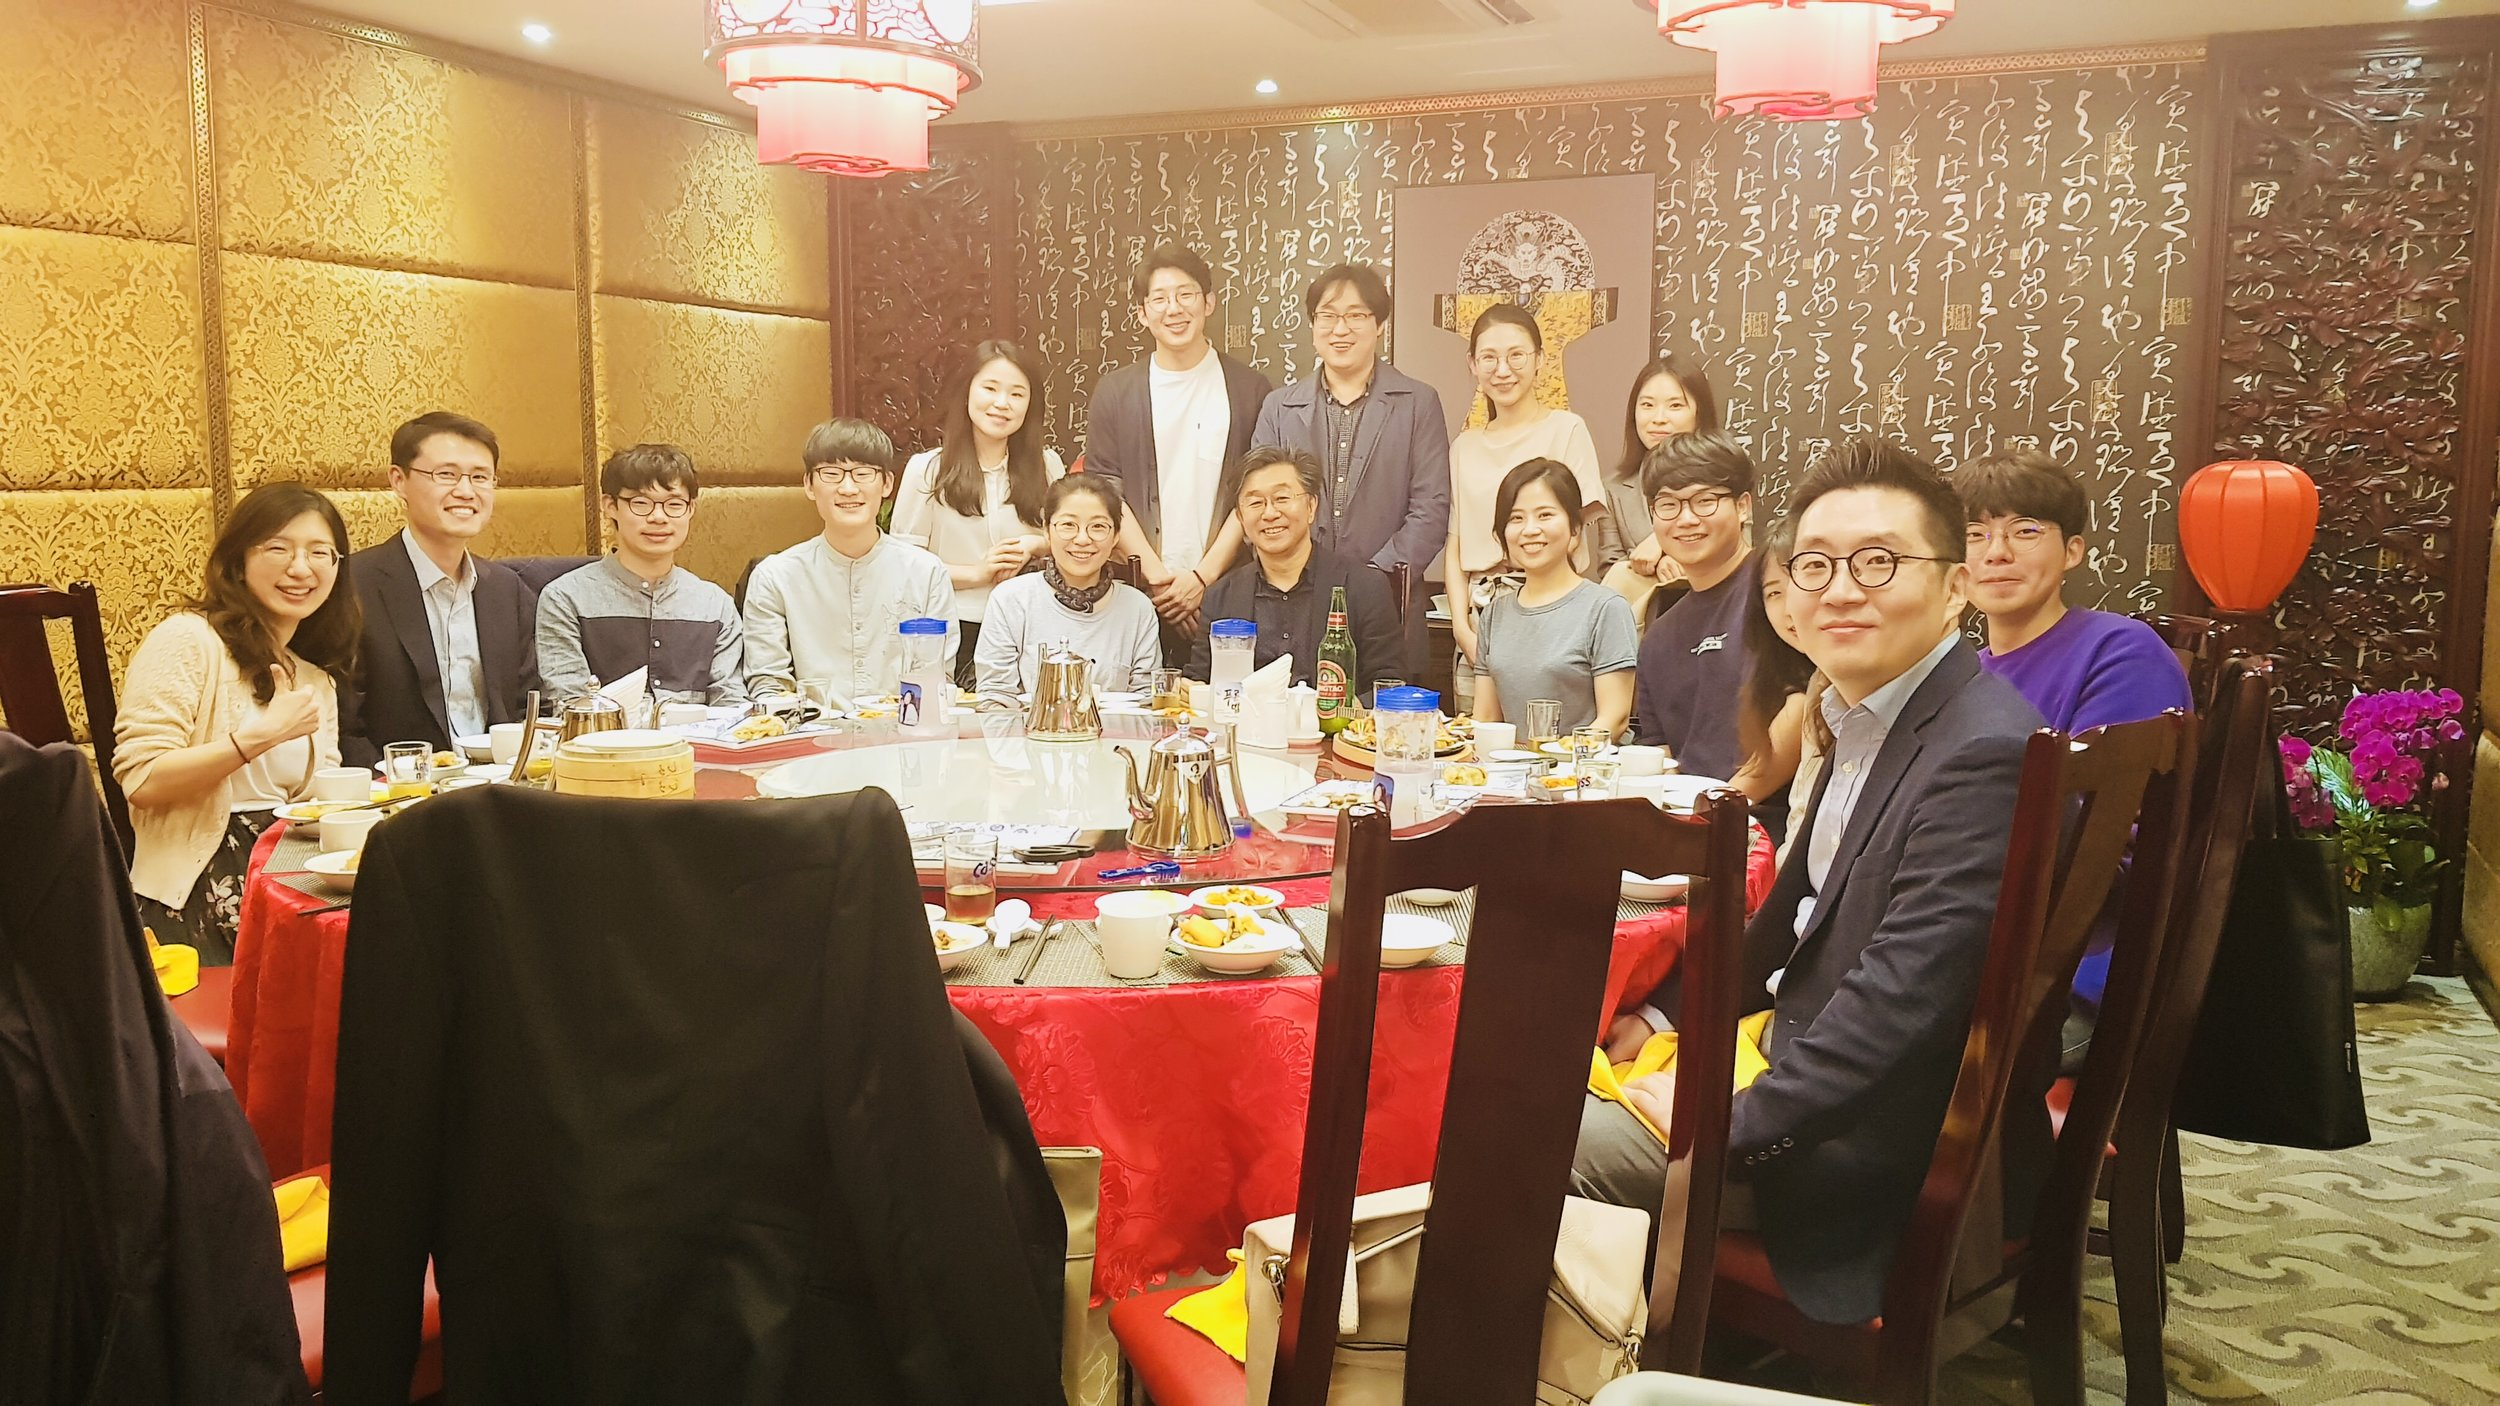 Dinner with BRL team @ 연희동 연경, May 2018